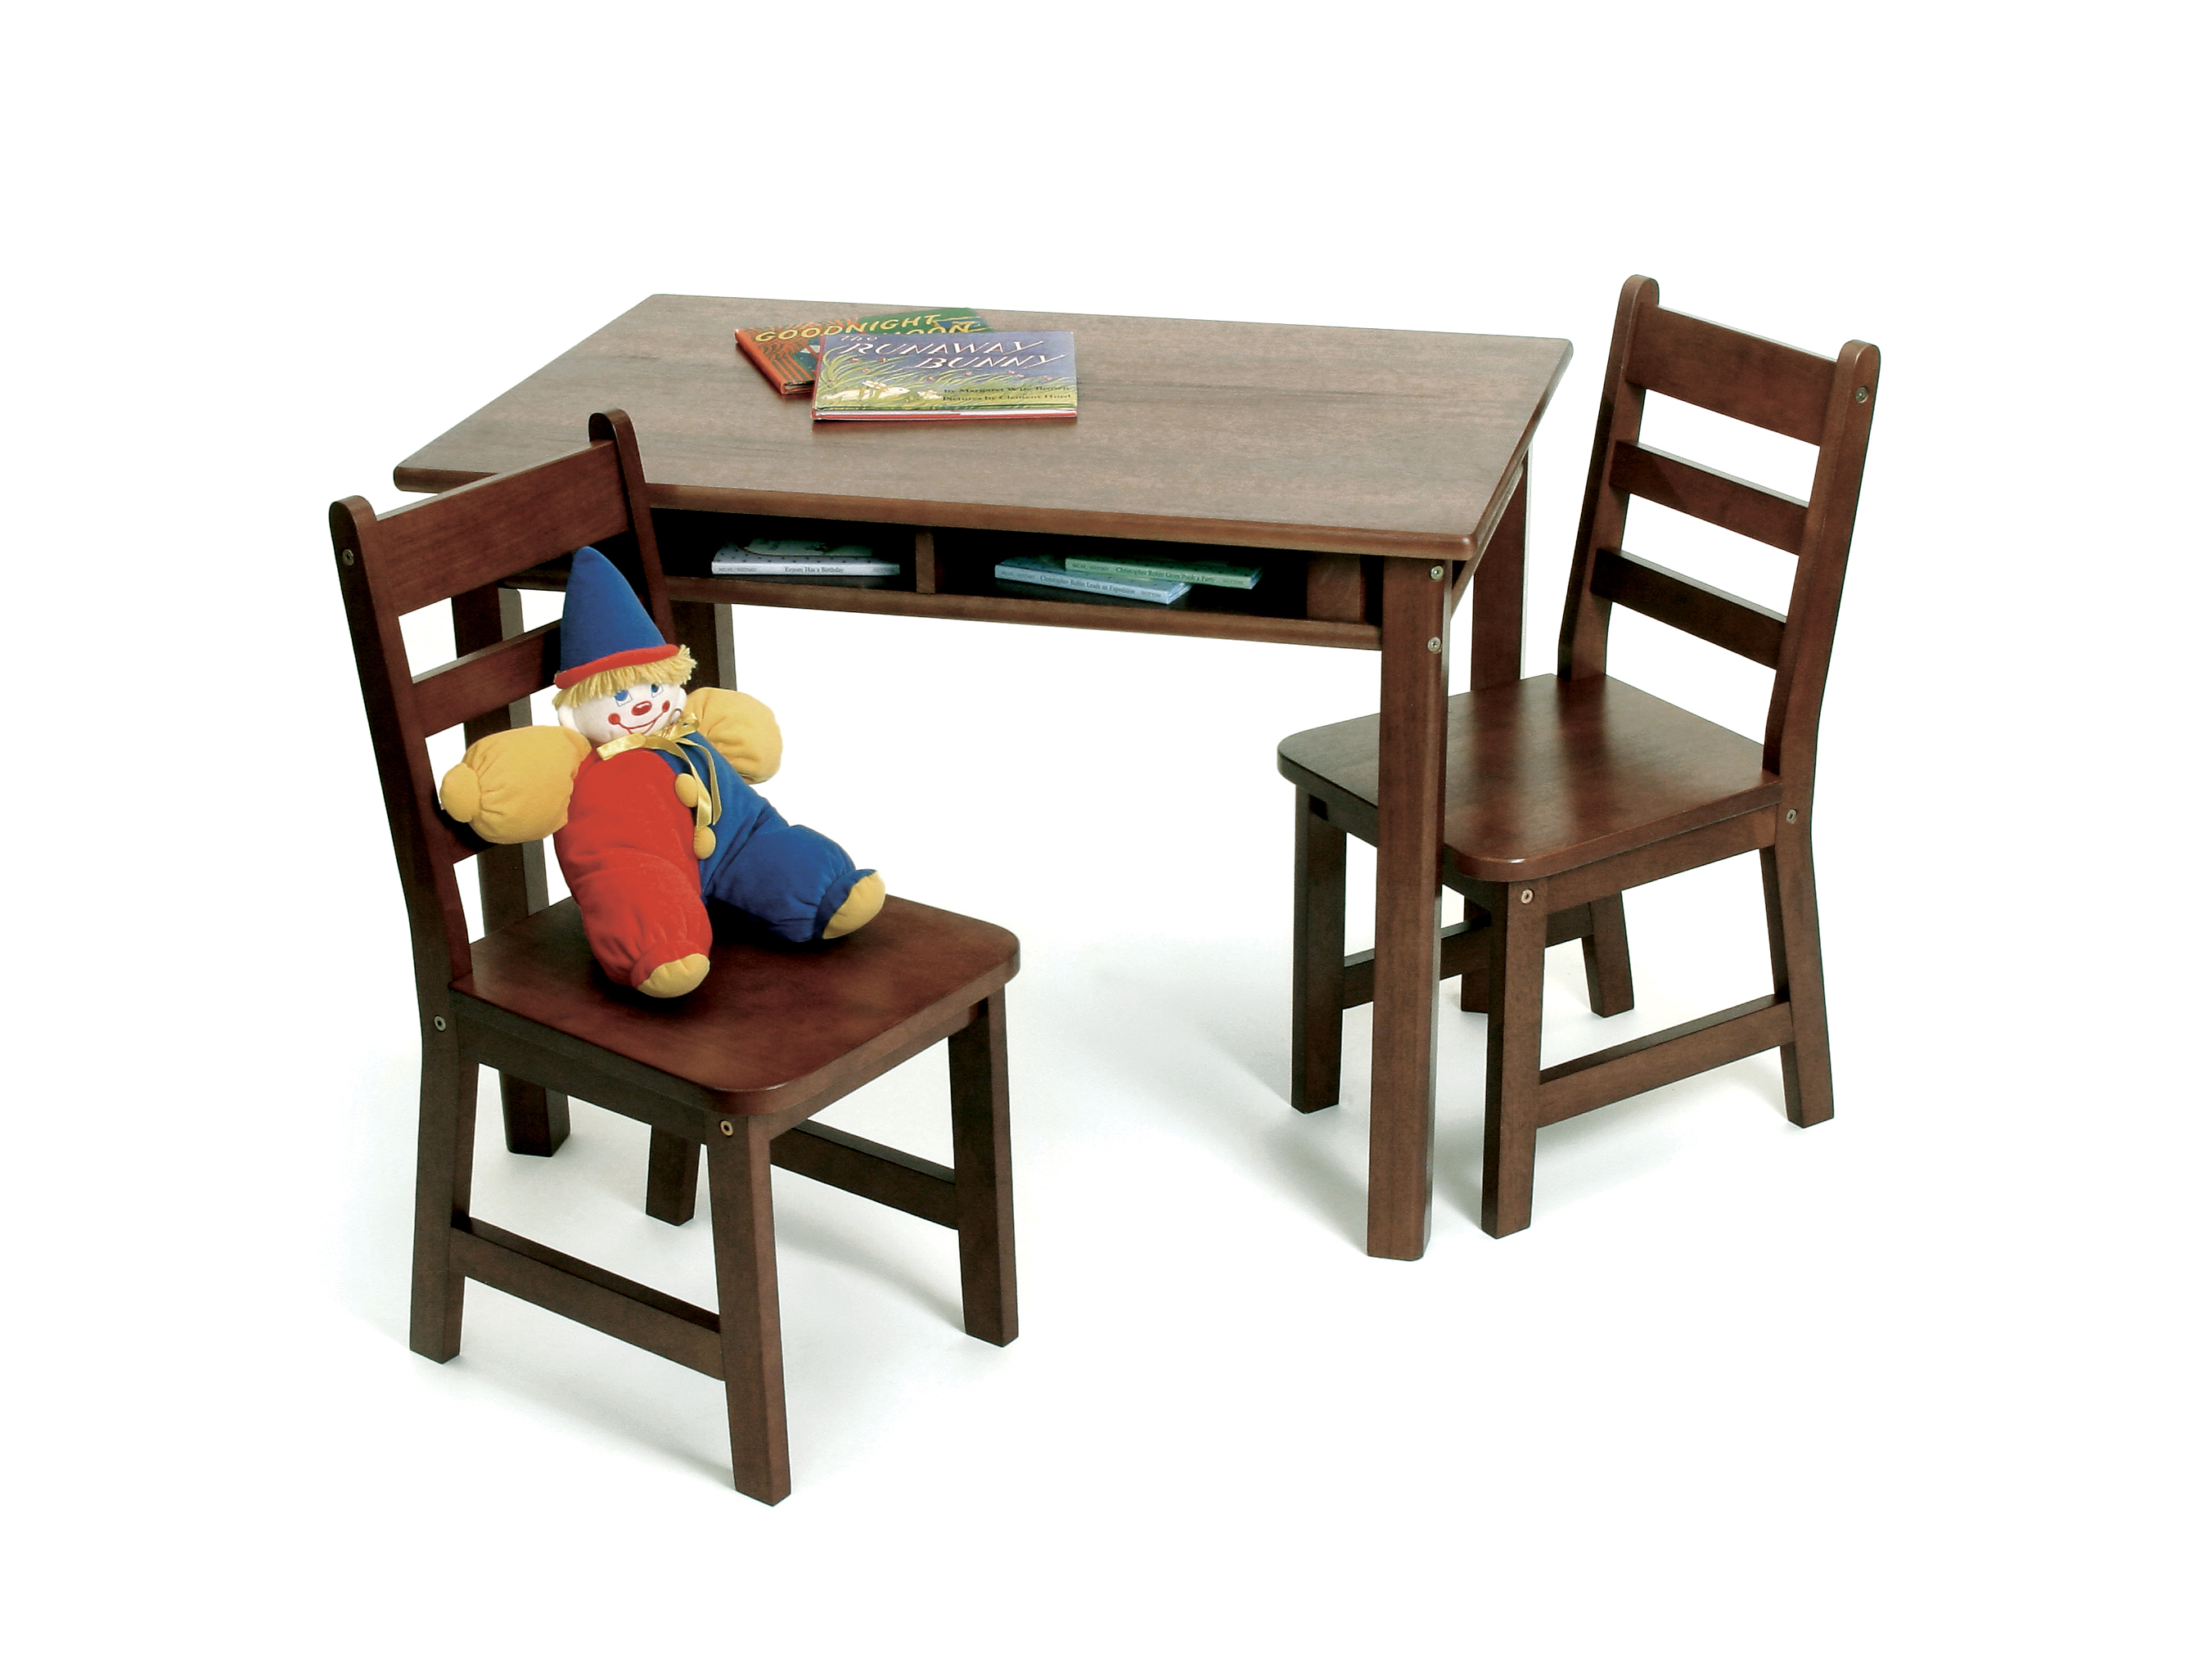 Child s Rectangular Table with Shelves & 2 Chairs Walnut Finish